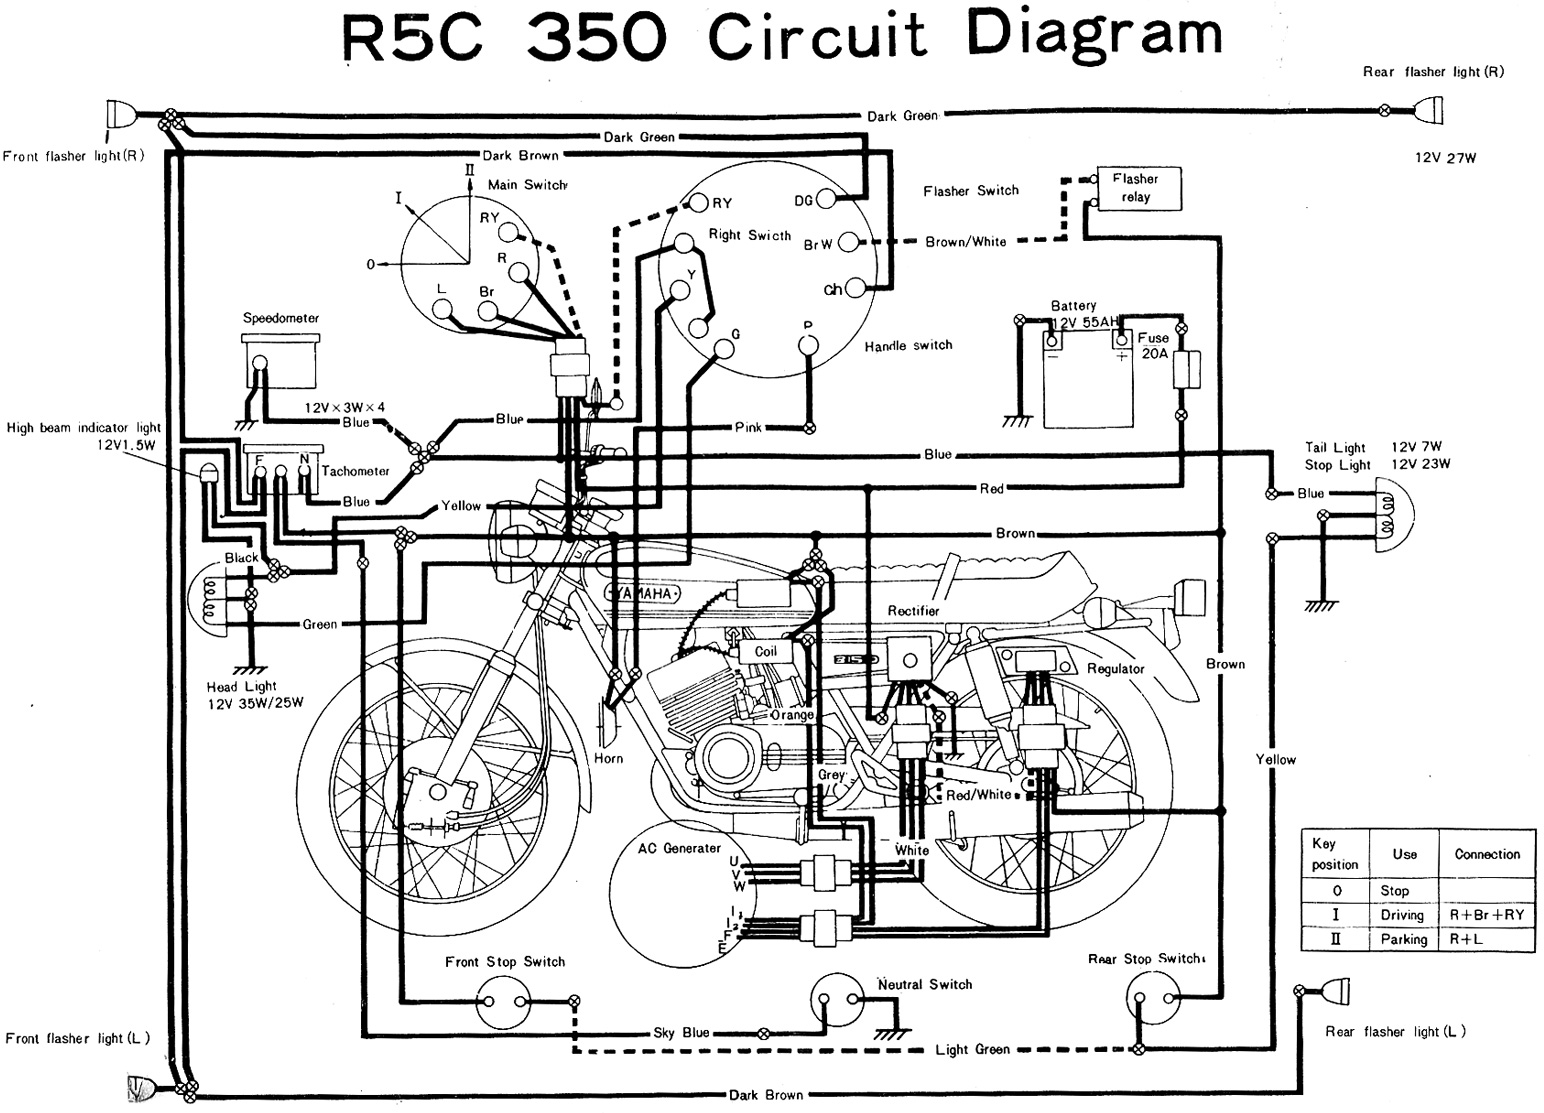 Yamaha RD350 R5C Wiring Diagram – Evan Fell Motorcycle Works